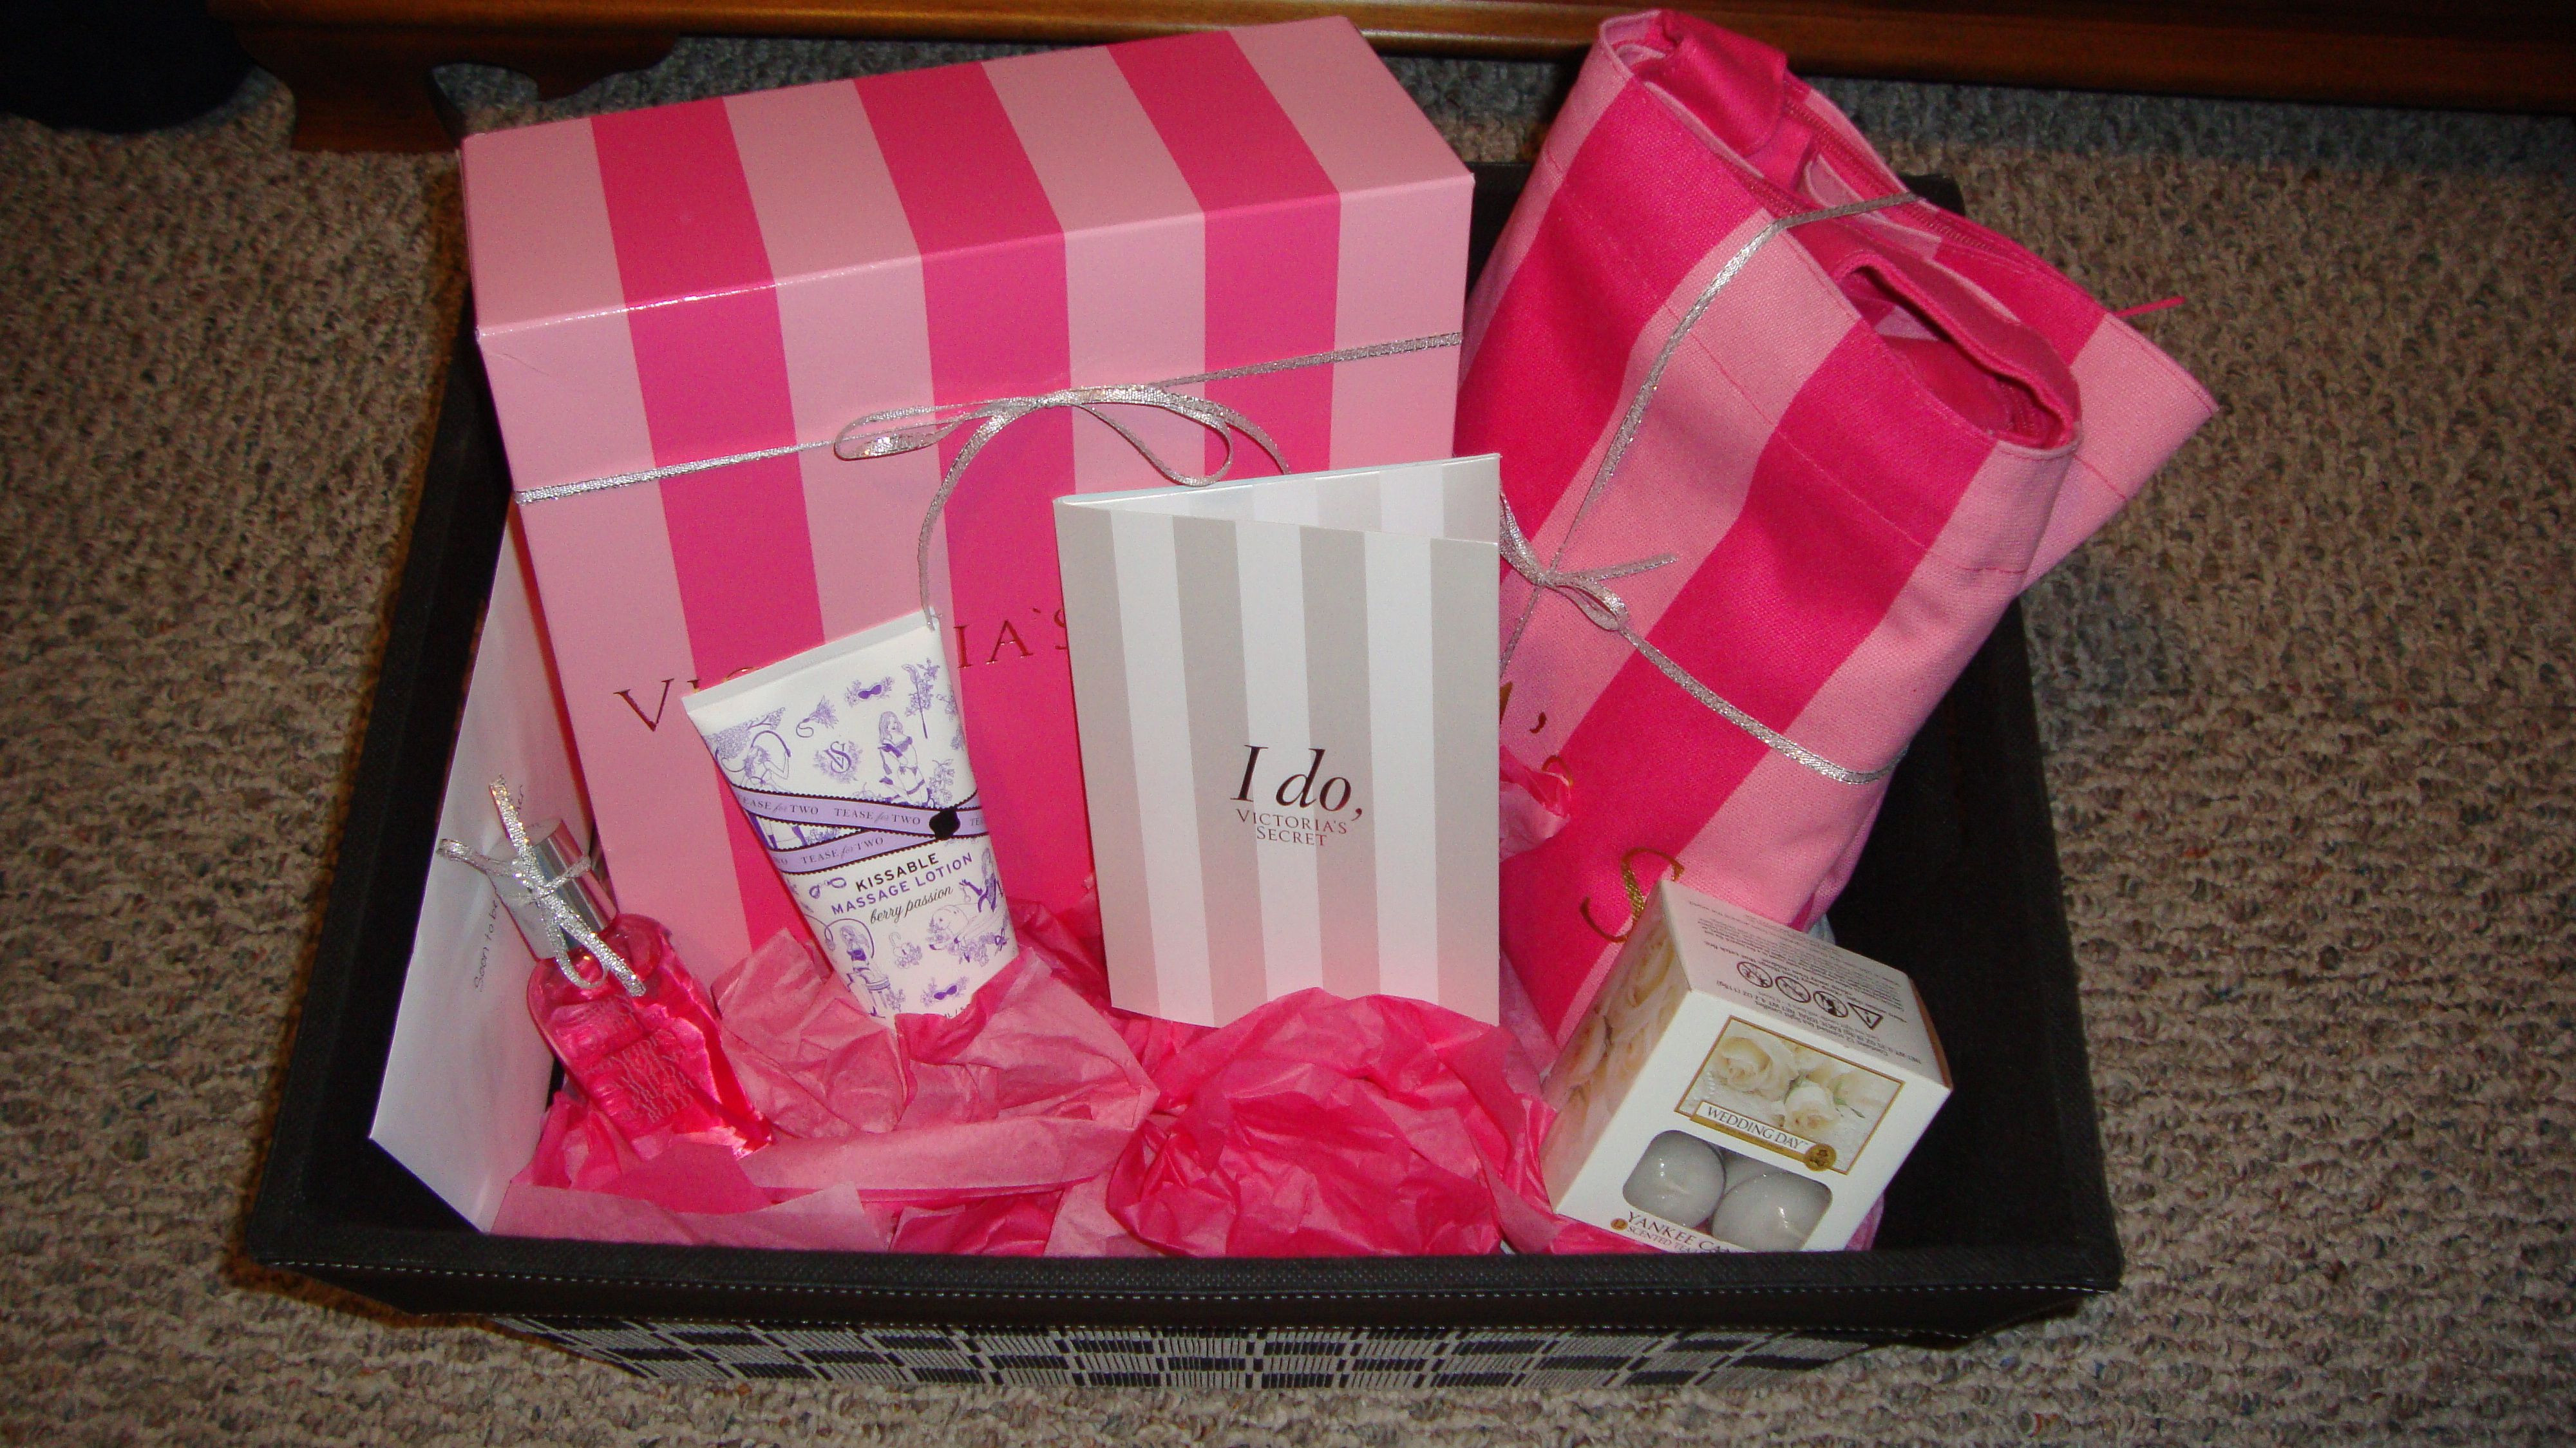 Best ideas about Bridal Shower Gift Ideas For Her . Save or Pin Bridal shower t idea Inside the Victoria Secret box Now.